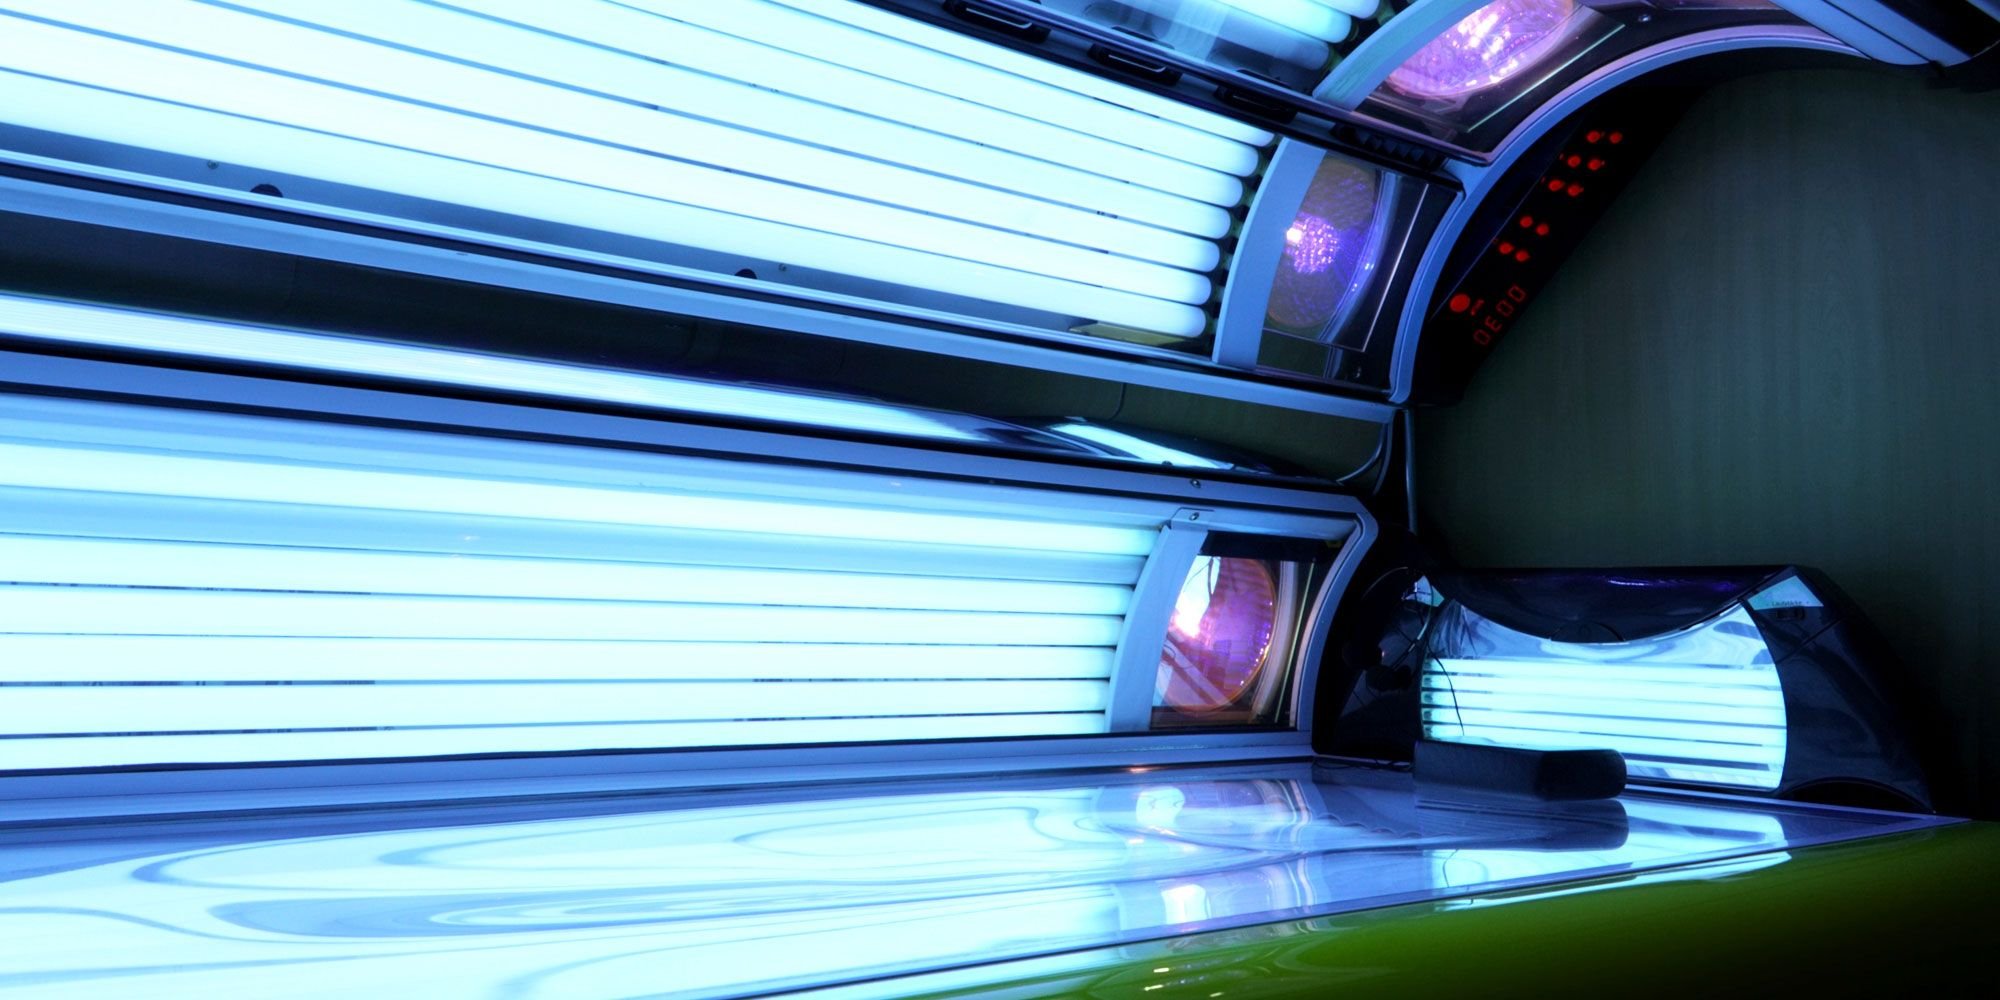 study says banning minors from tanning beds would save thousands